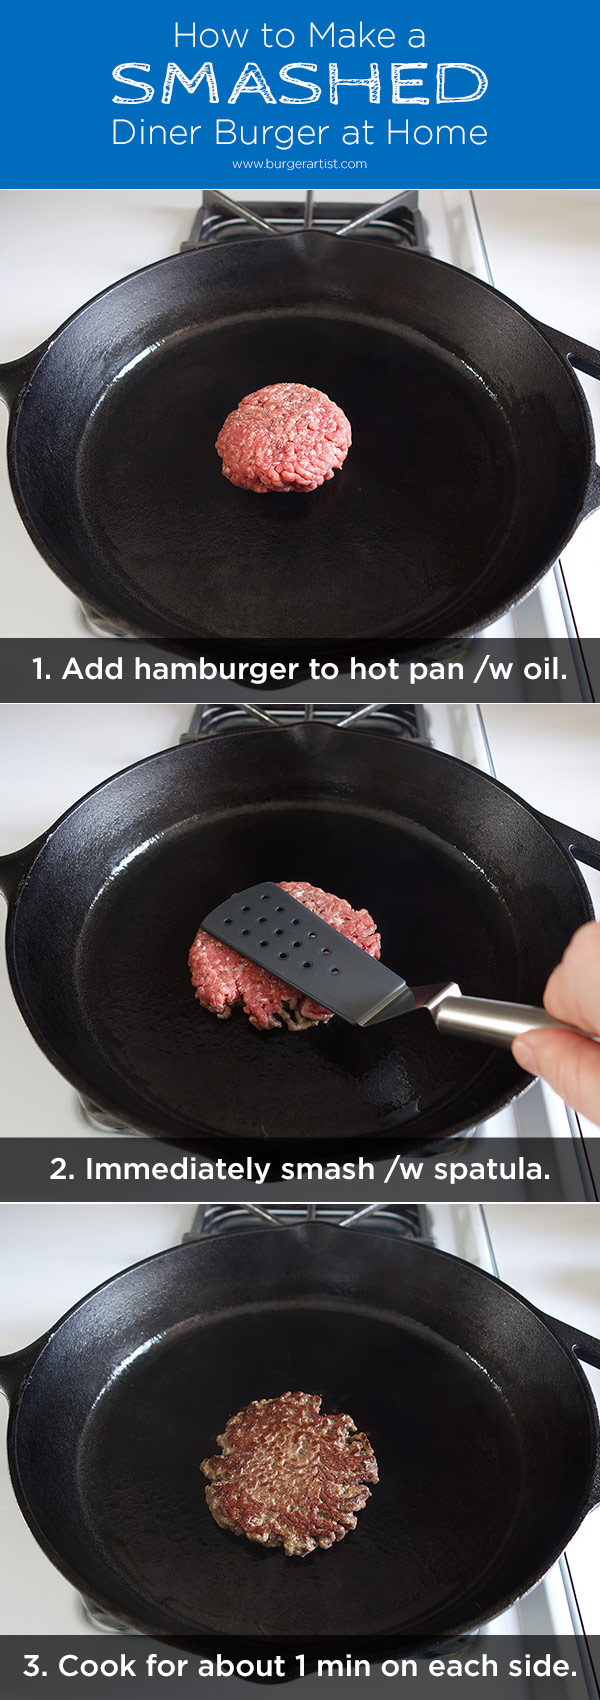 3 easy steps to making a smashed diner burger recipe in your home kitchen.